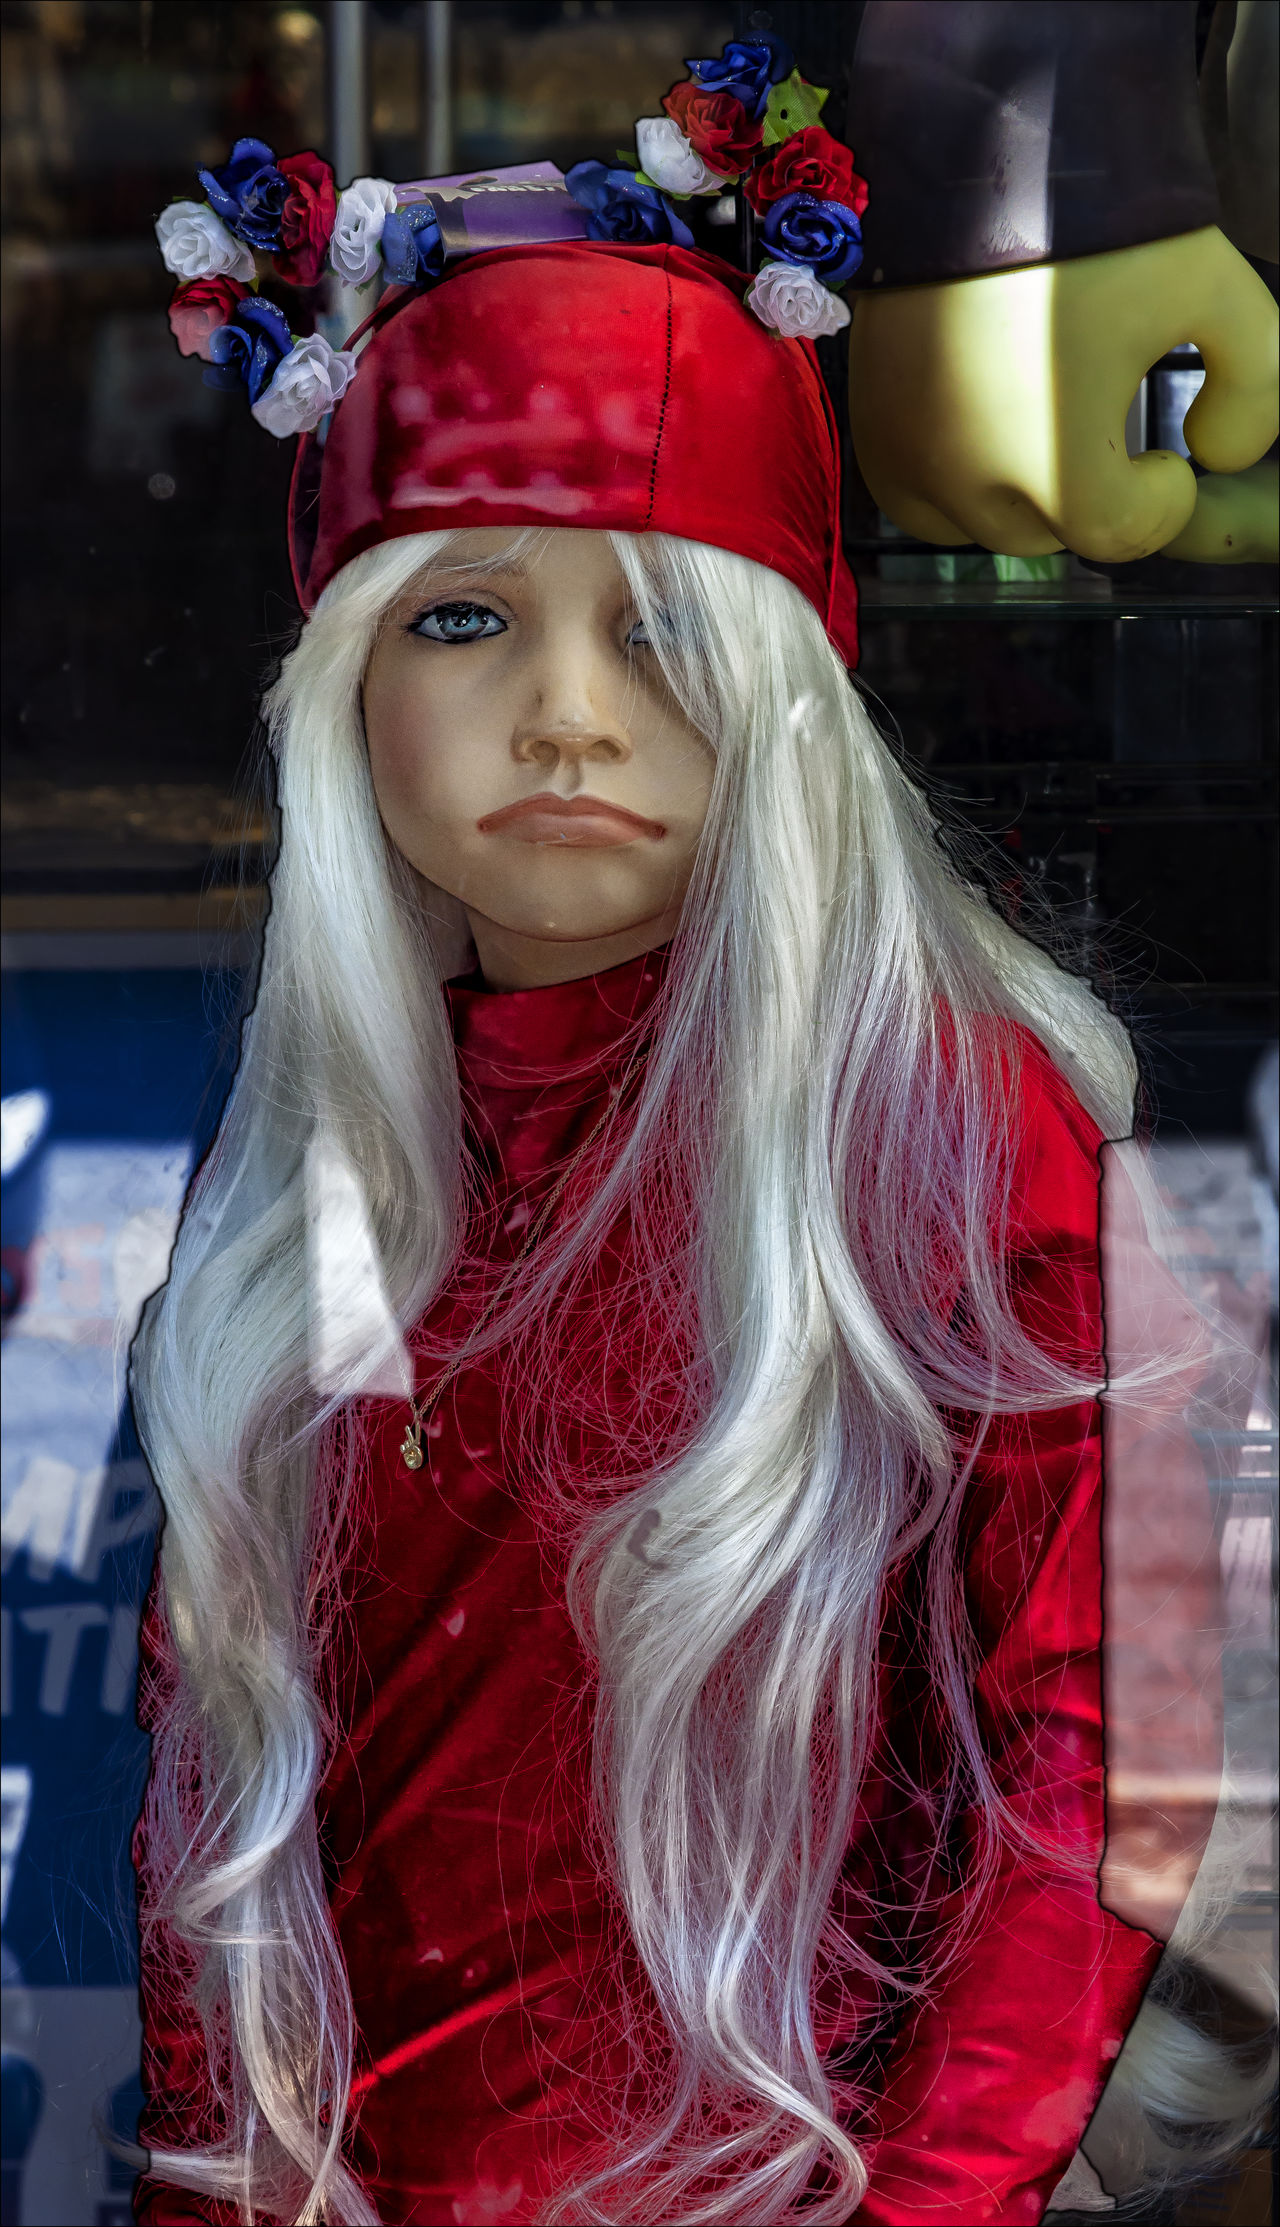 Mannequin Female Mannequin Mannequin In Red Mannequin In Store Window Mannewuin White Wig On Mannequin